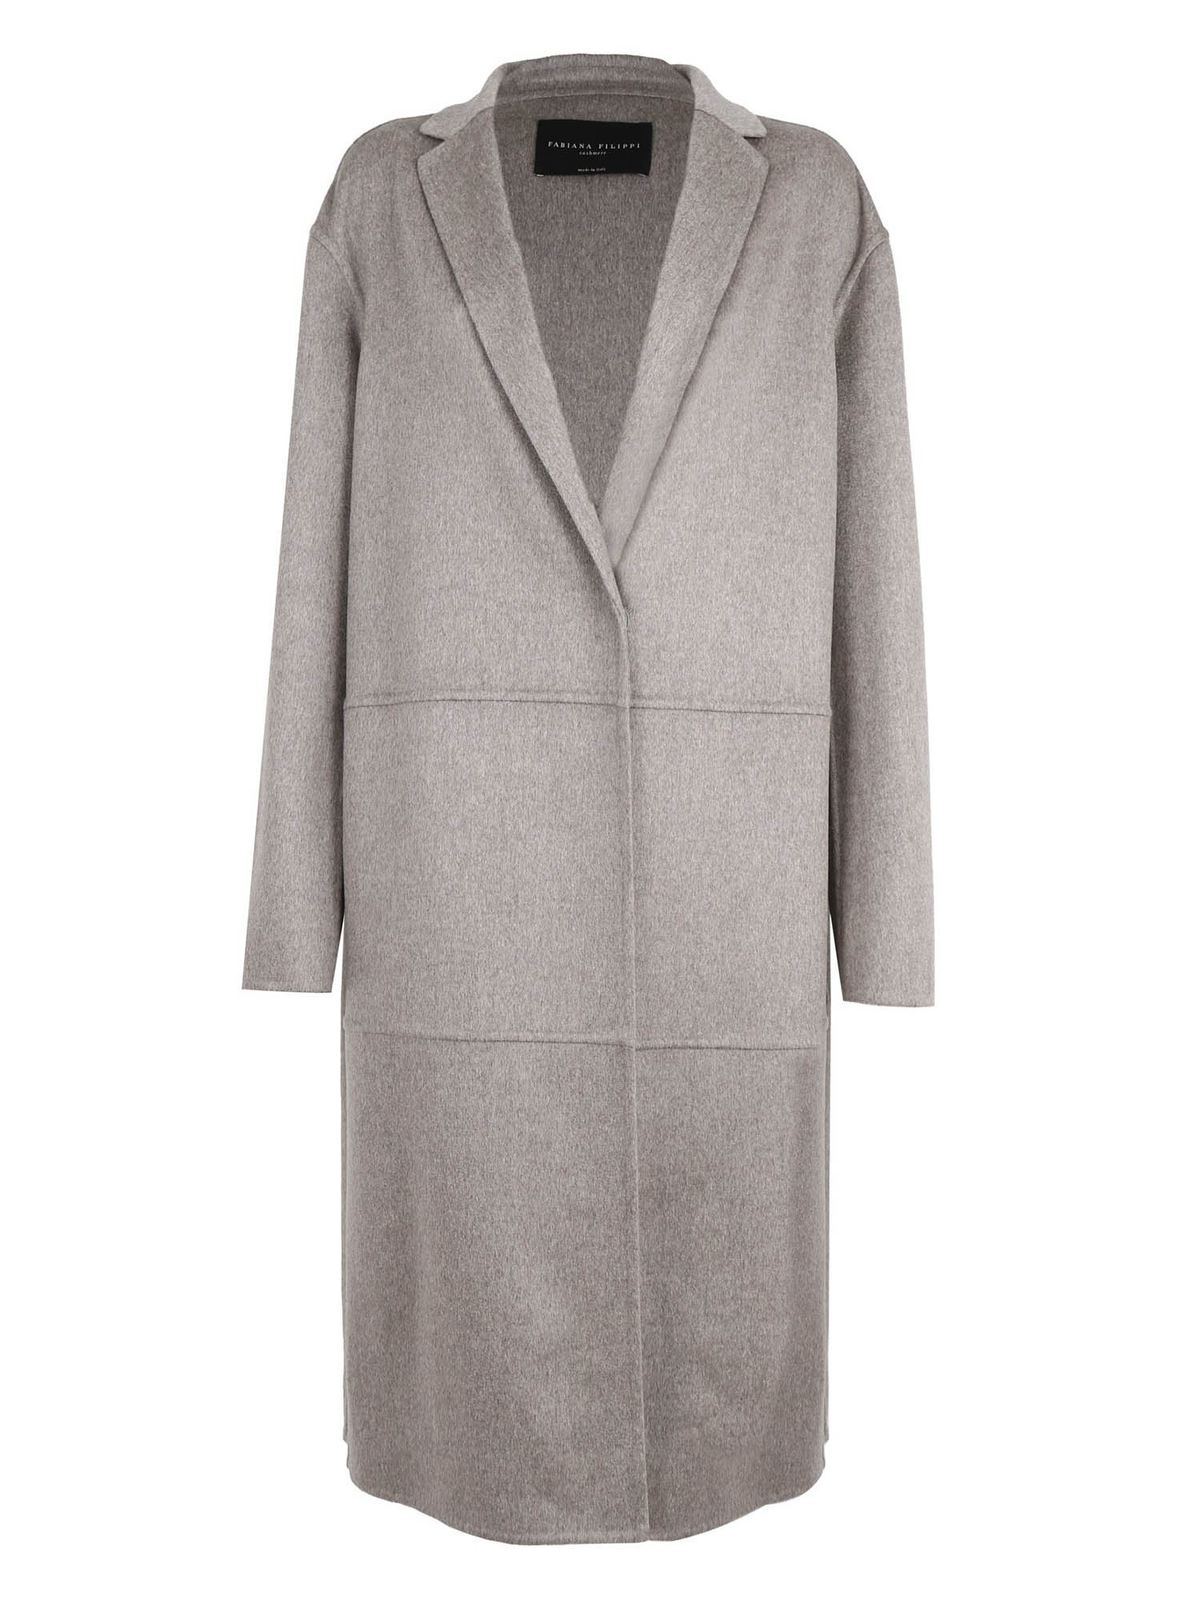 Fabiana Filippi CASHMERE COAT IN GREY